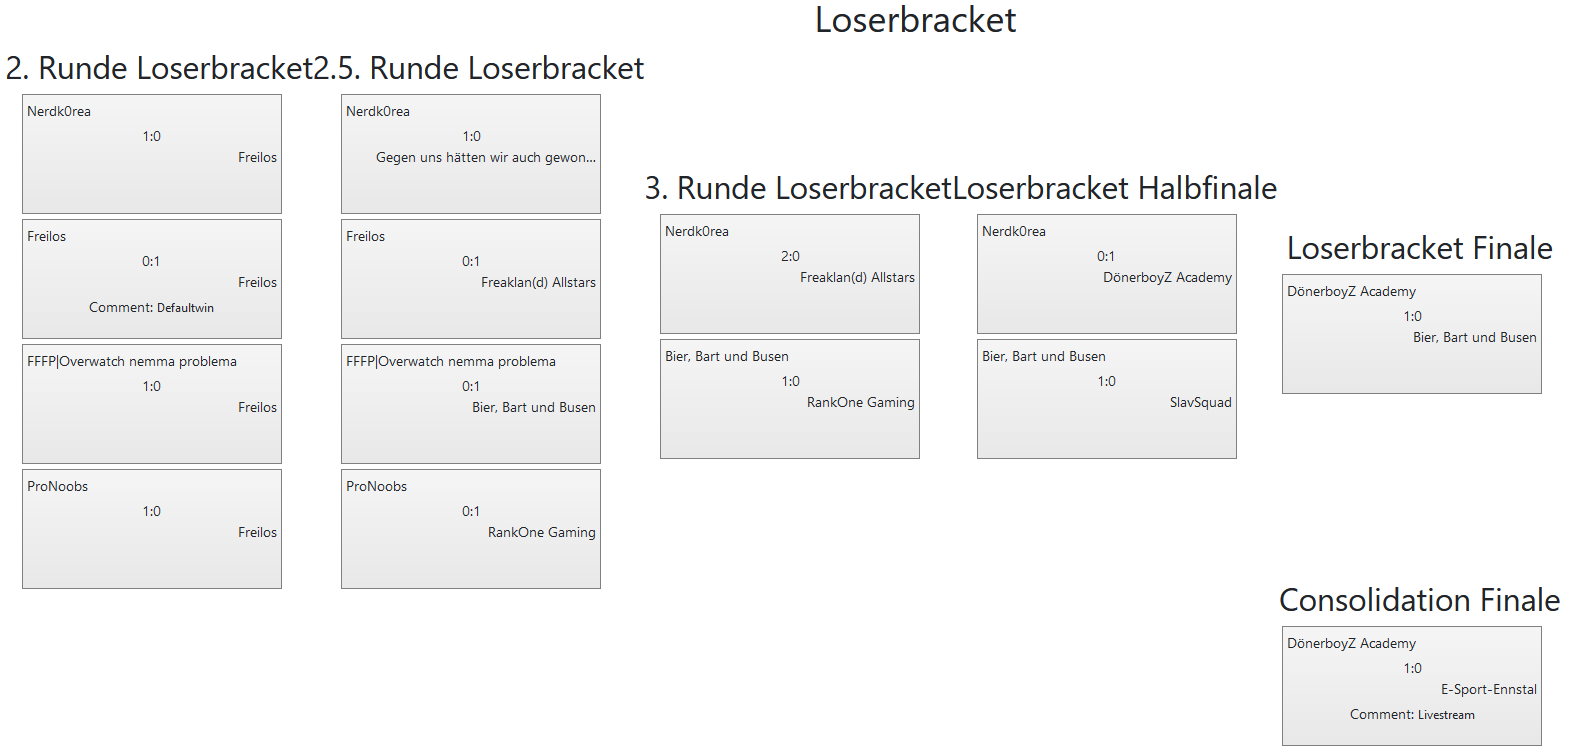 48.VulkanLAN League of Legends Loserbracket all